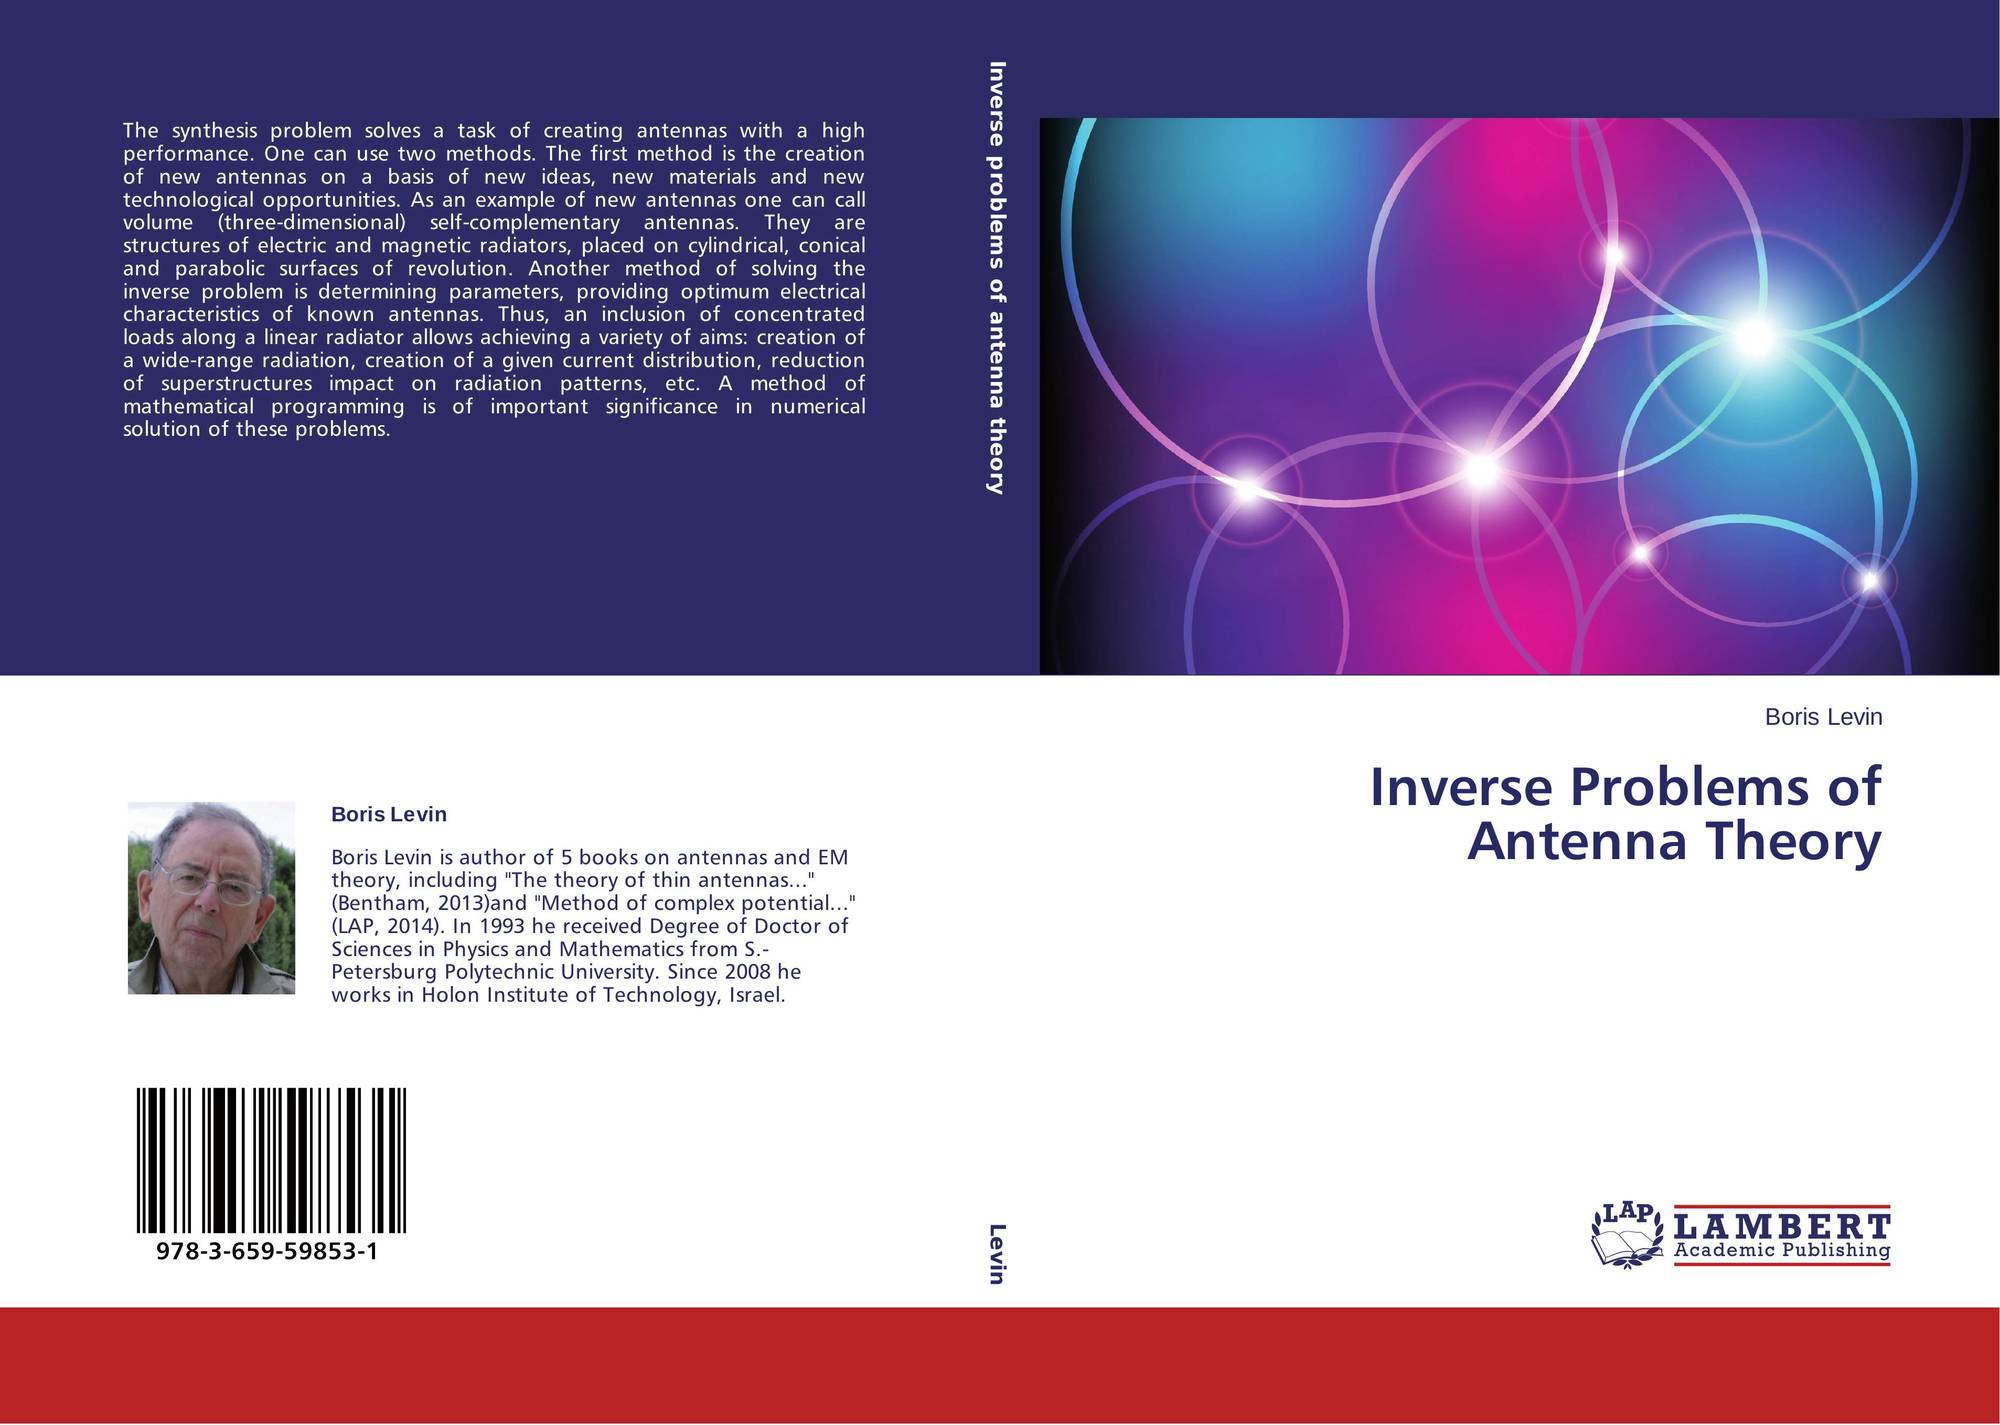 Inverse Problems of Antenna Theory, 978-3-659-59853-1